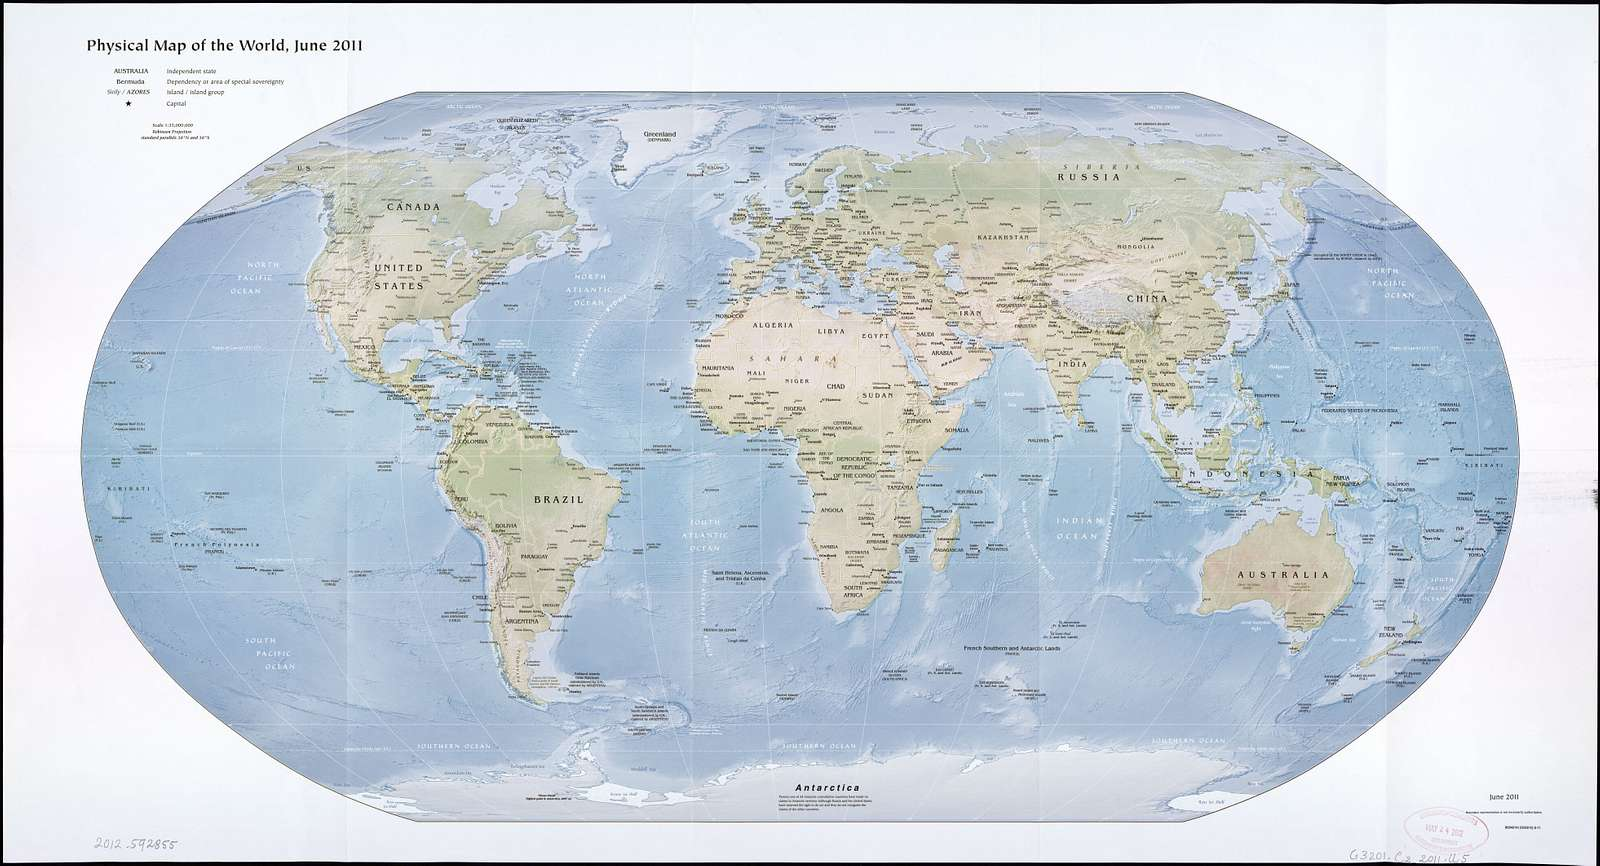 Physical map of the world, June 2011.